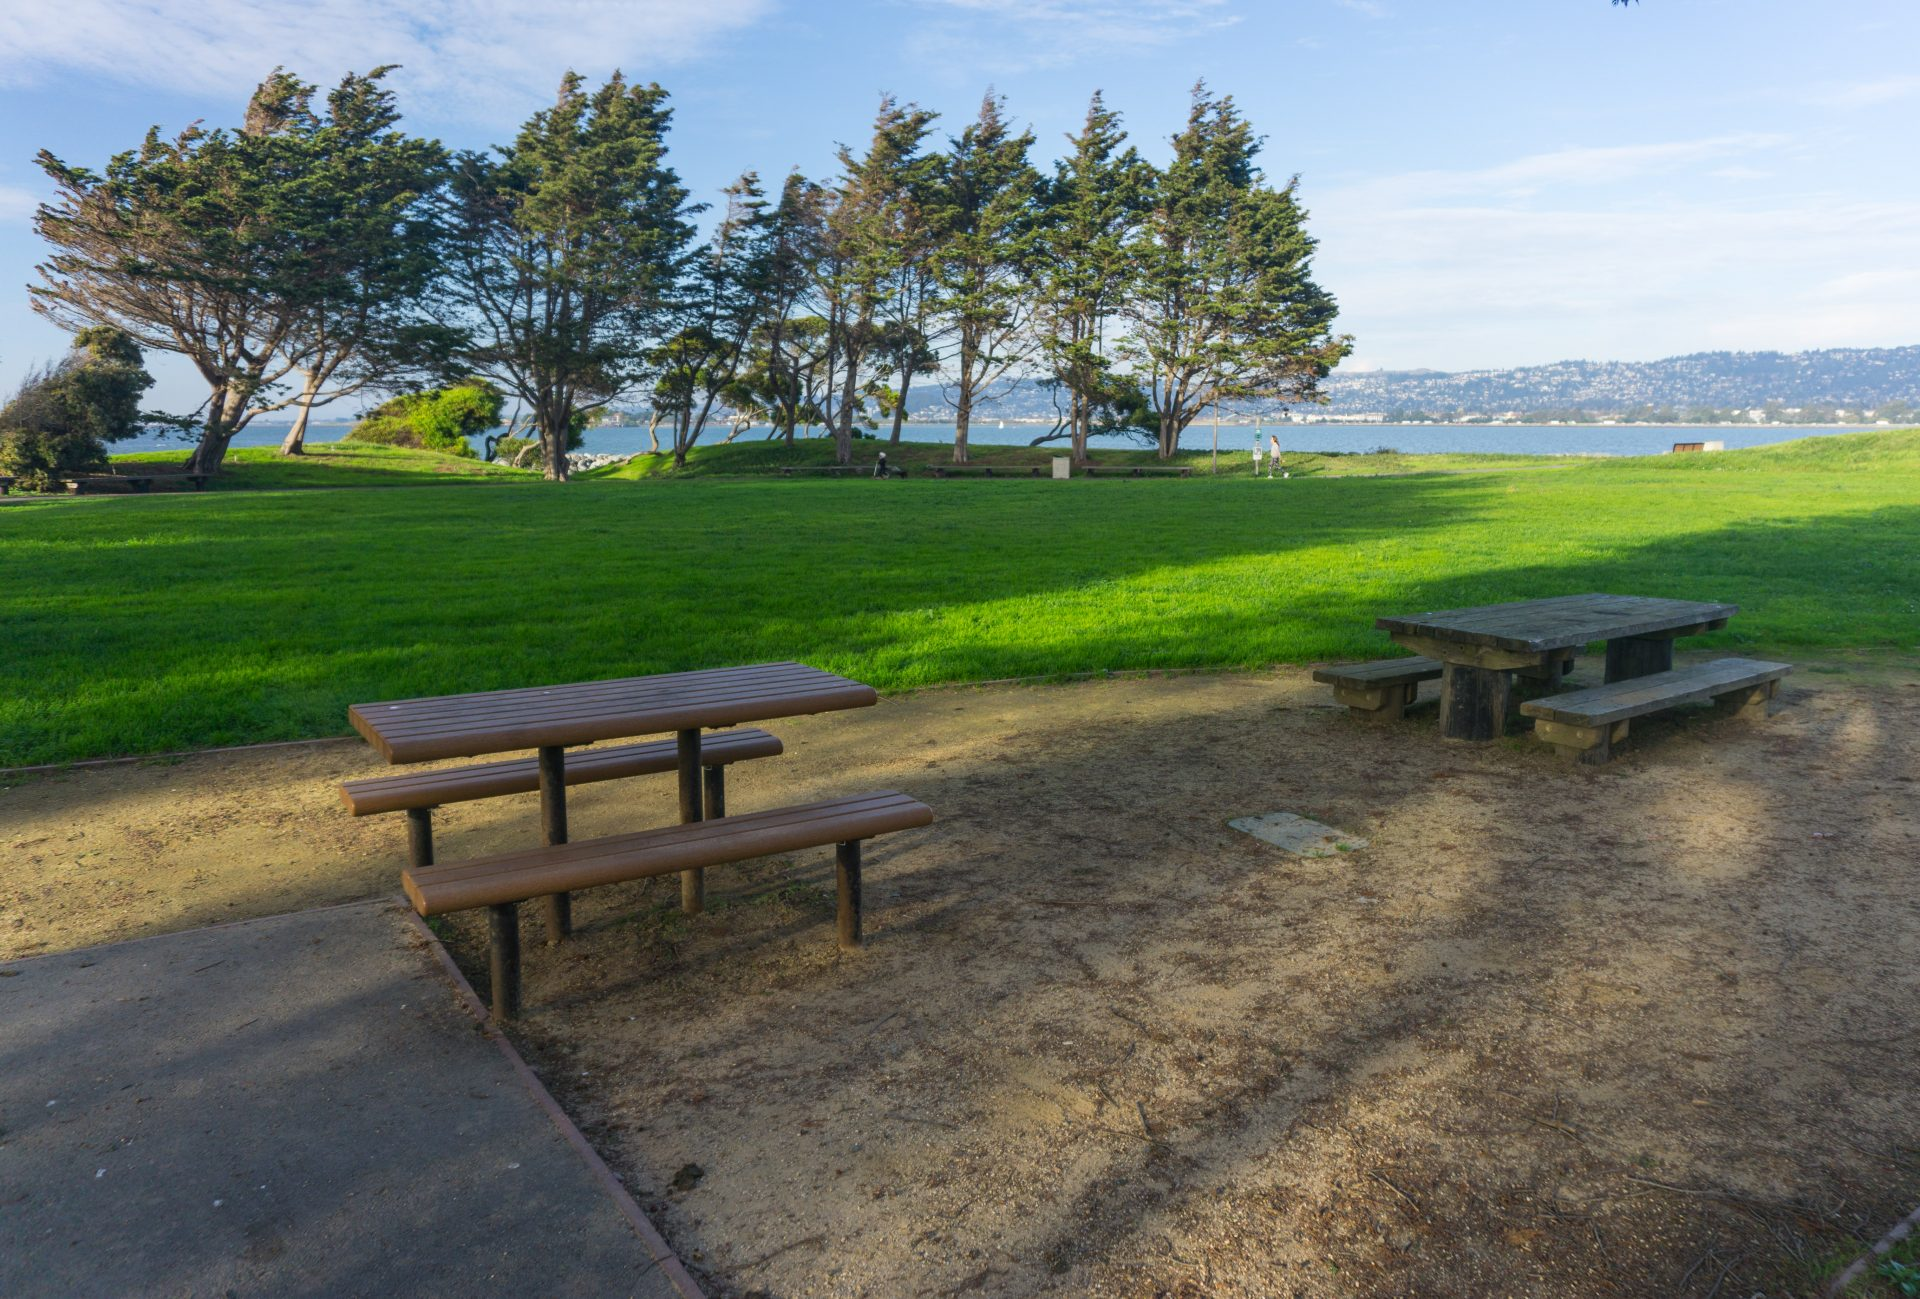 picnic benches in foreground, green lawn and trees beyond